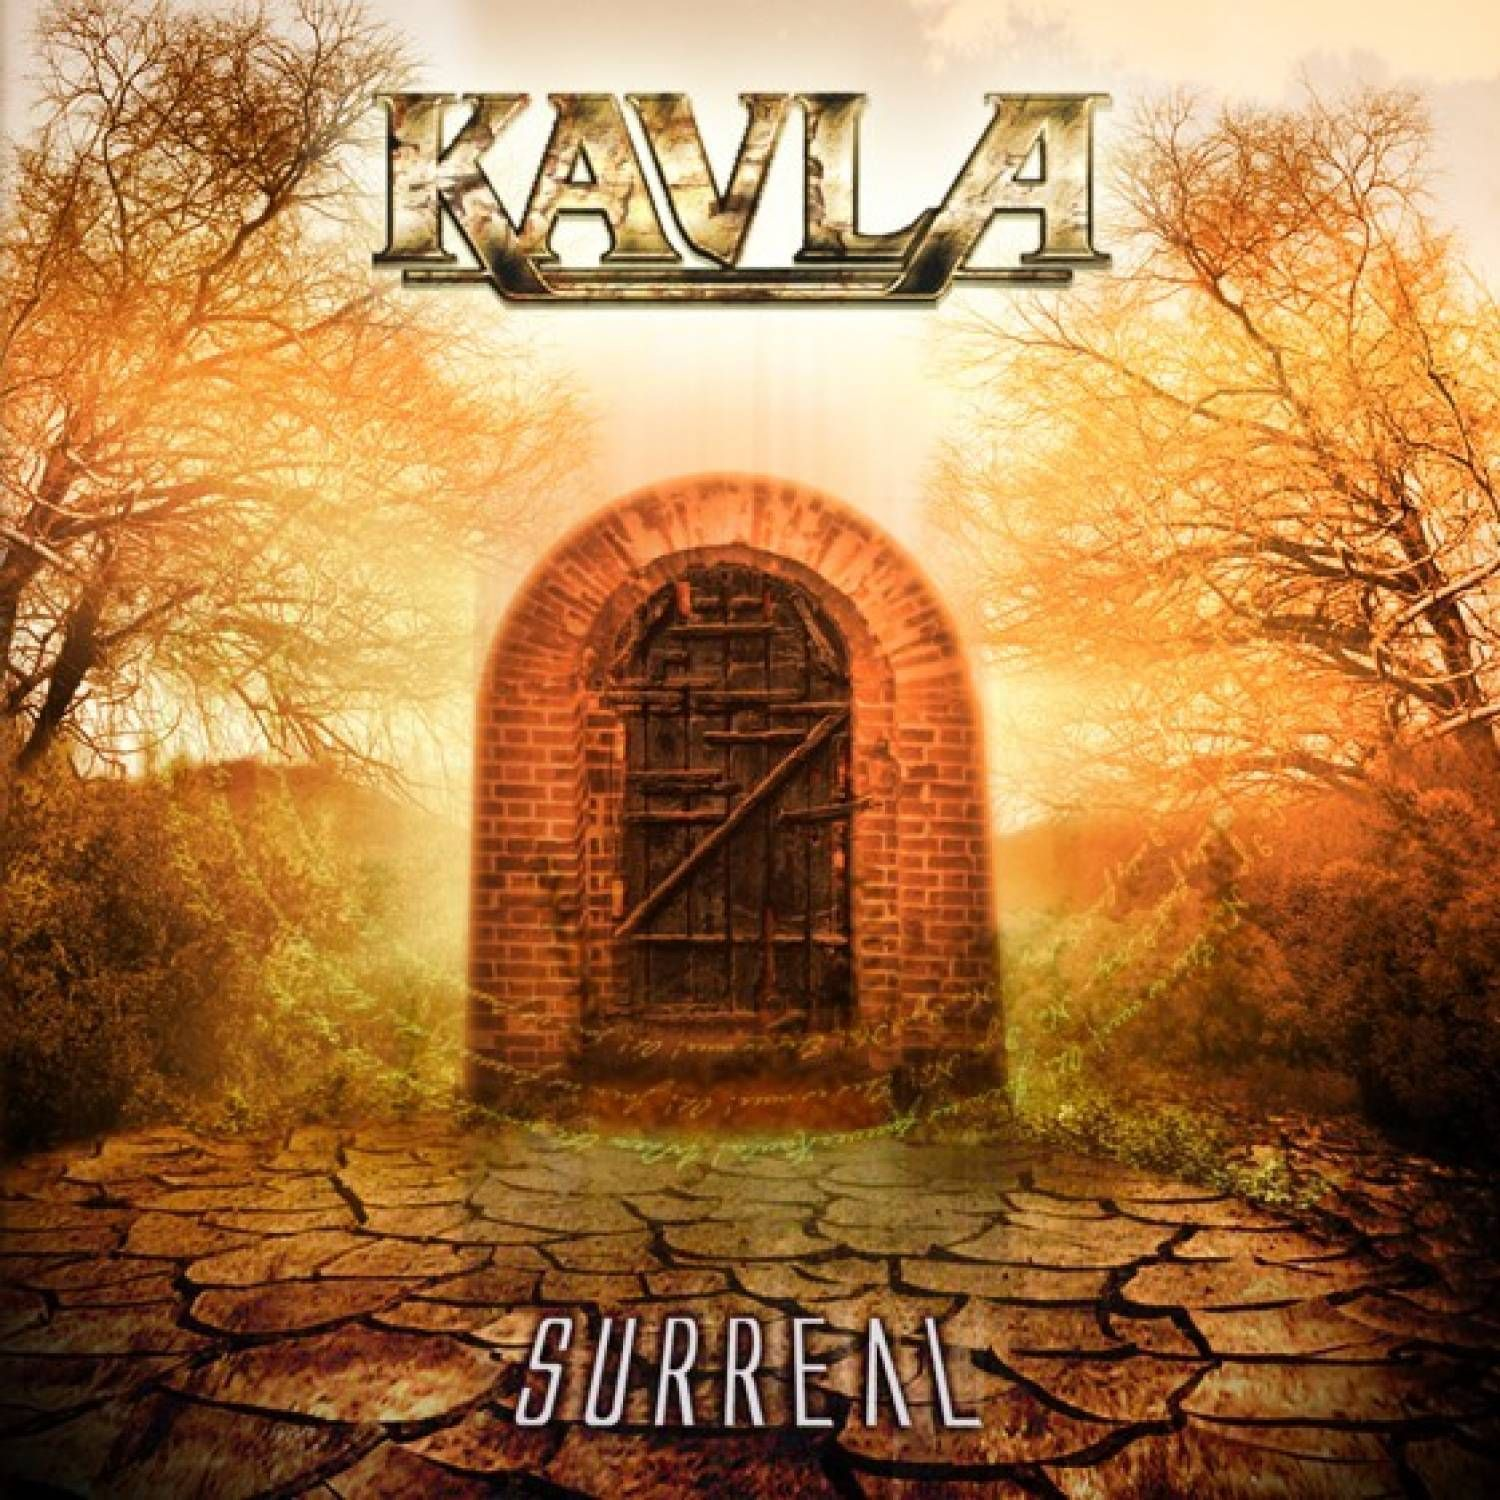 CD - Kavla - Surreal - Banda Kavla